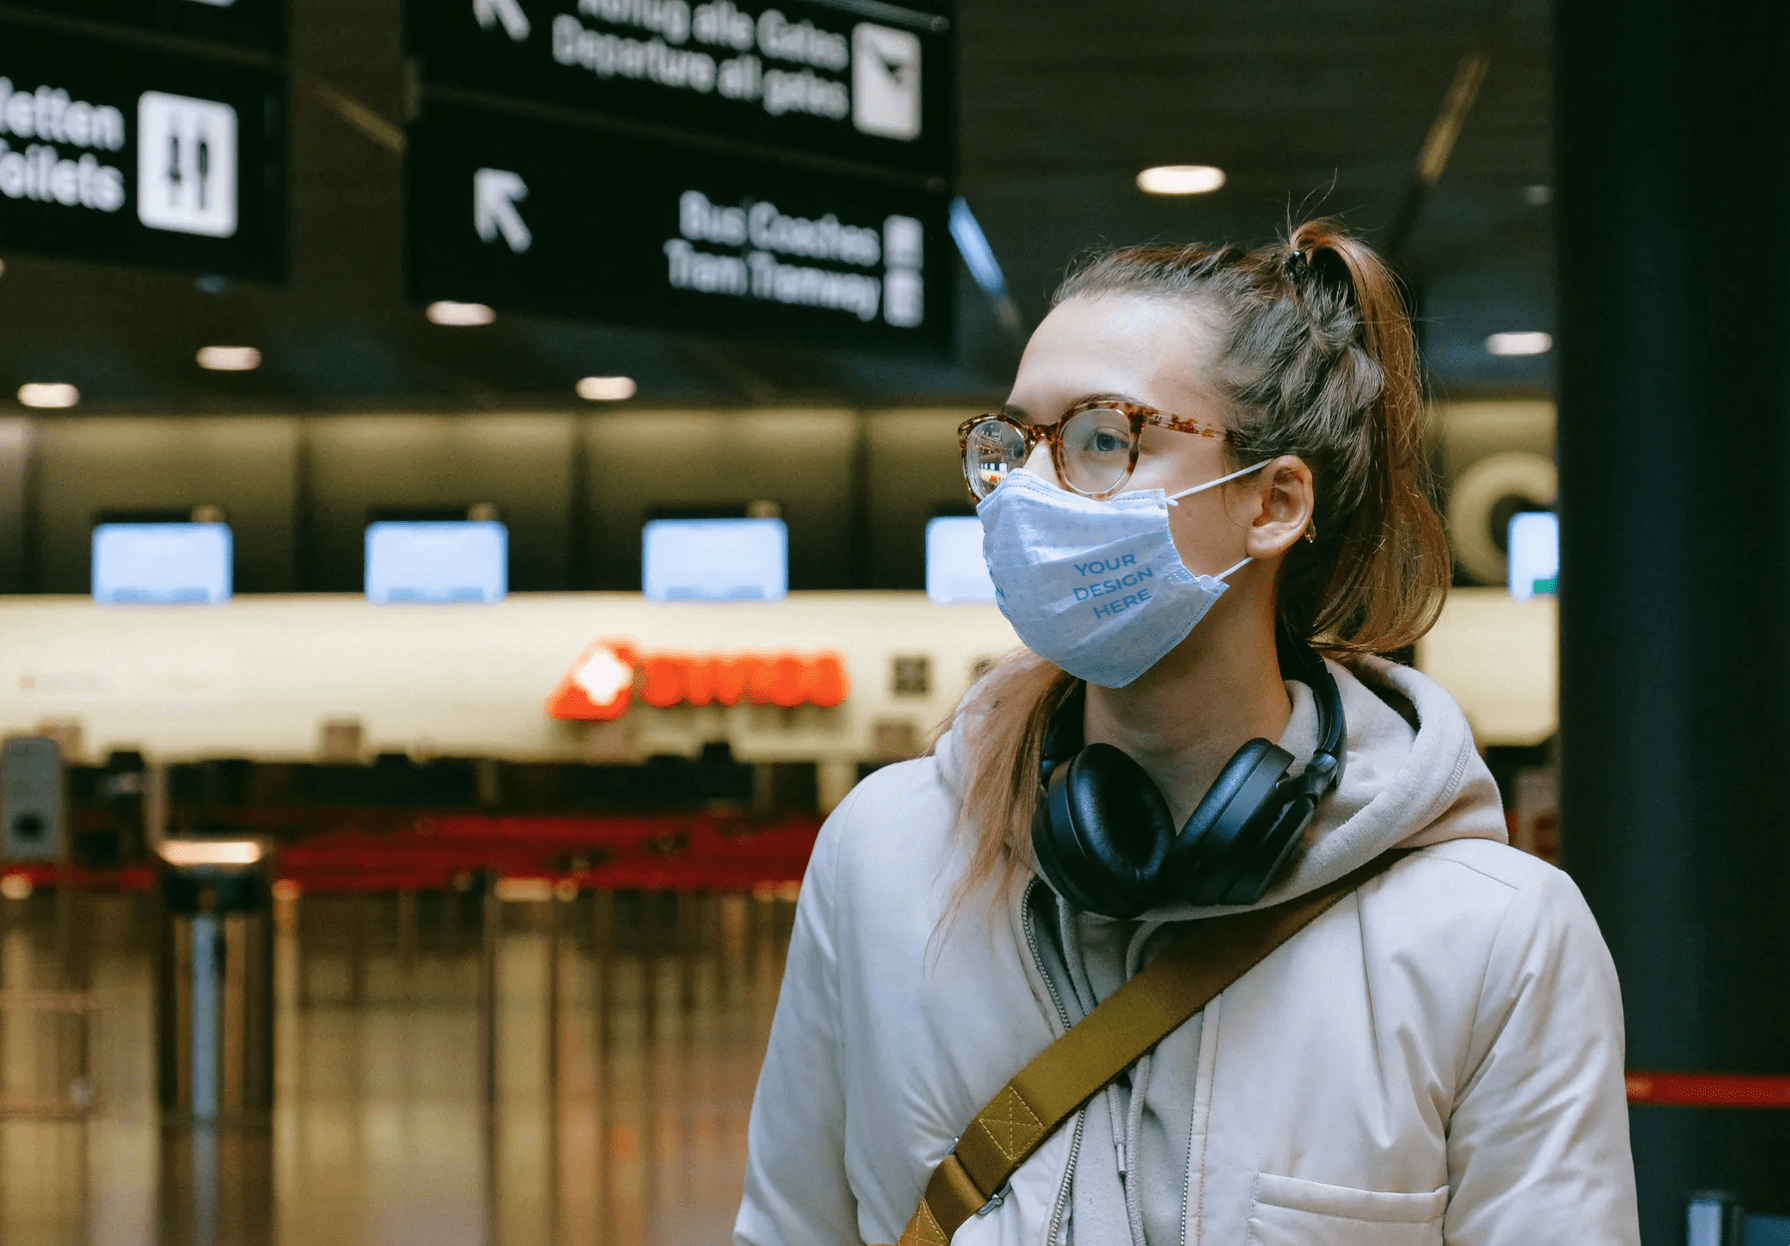 Woman Wearing a Face Mask at the Airport [Free Mockup Generator]